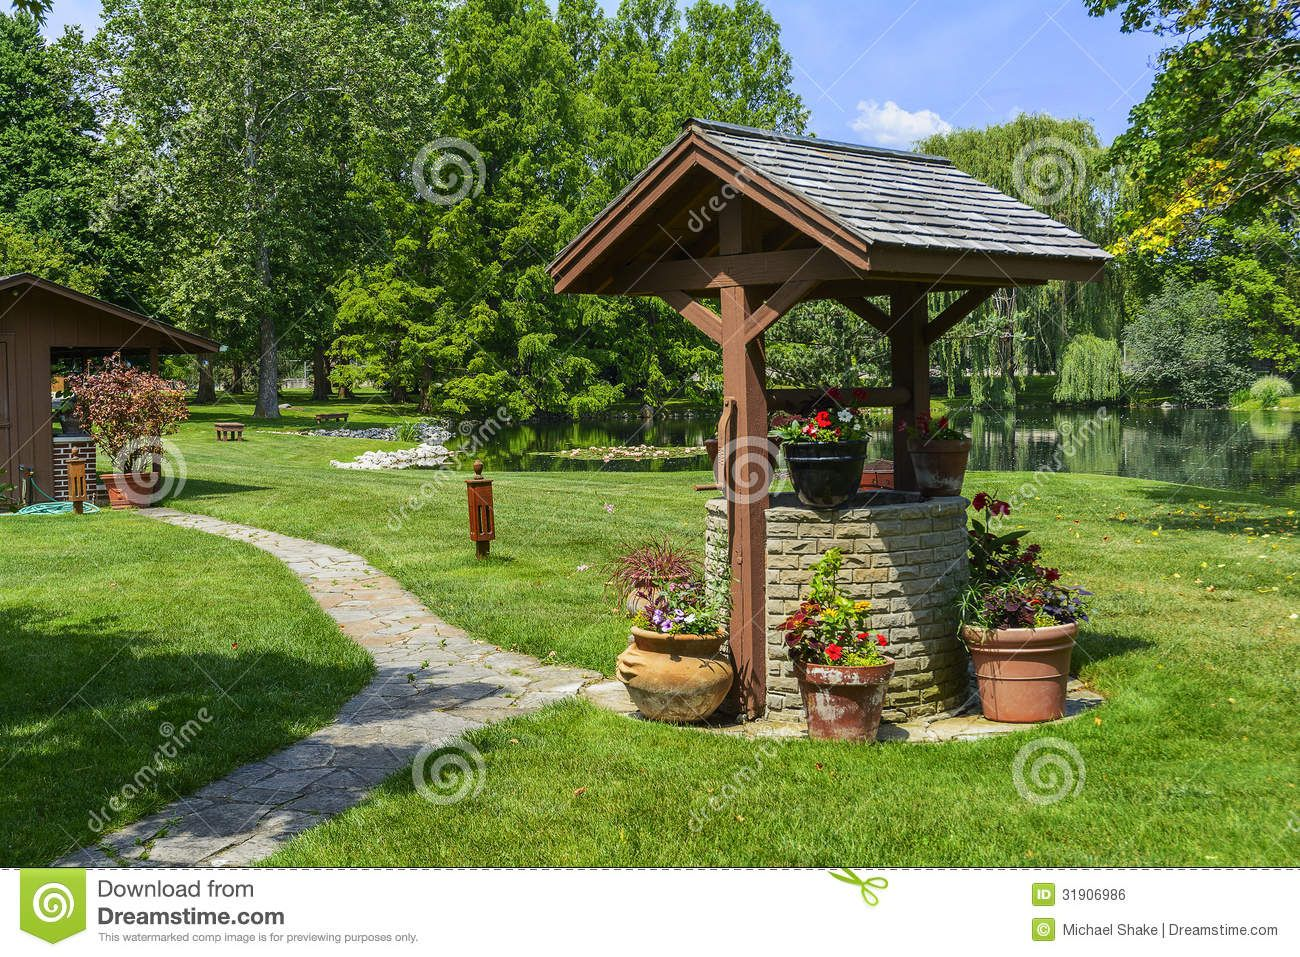 Garden designs with bridges and wishing wells landscaping ideas - Wishing Wells Yahoo Image Search Results